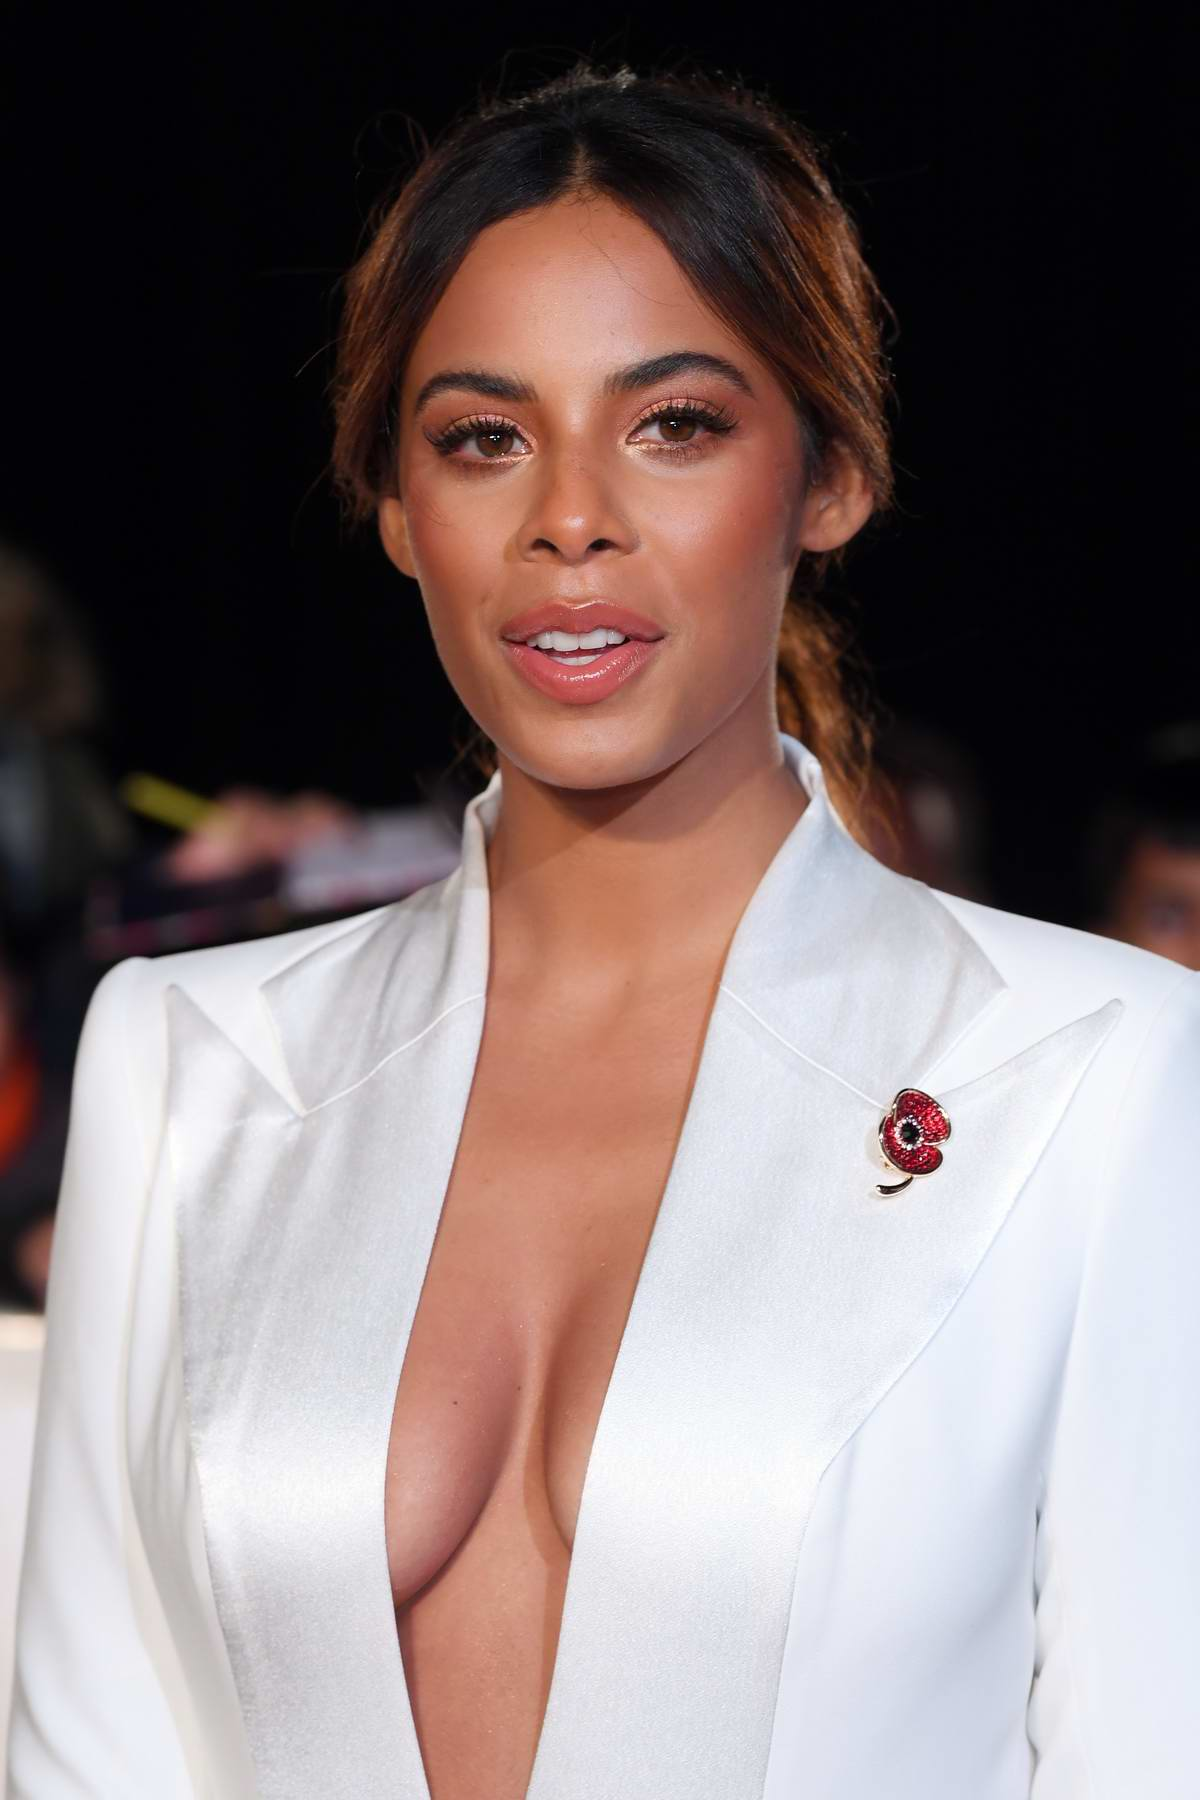 Rochelle Humes at the Pride of Britain Awards held at the Grosvenor House in London